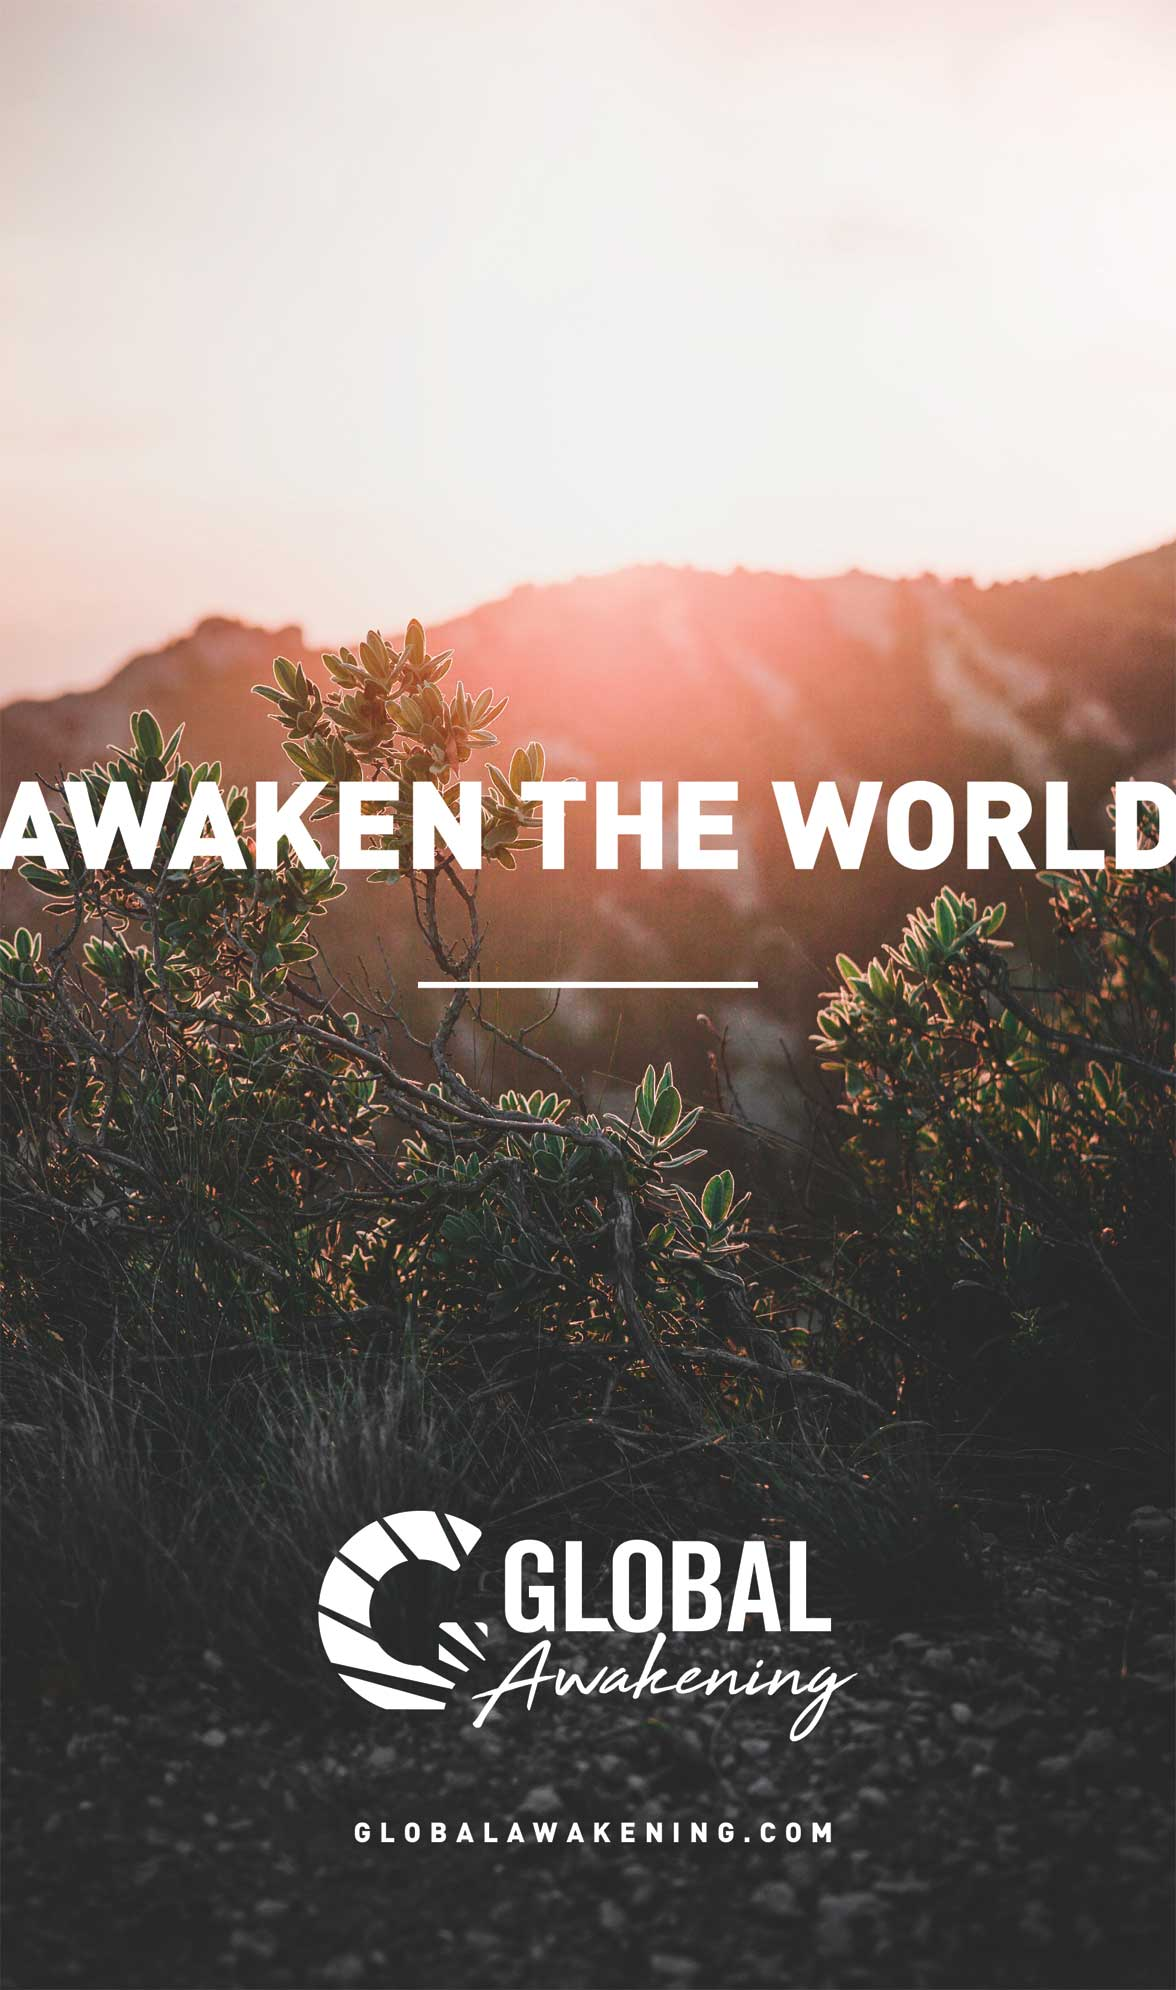 poster of new Global Awakening logo